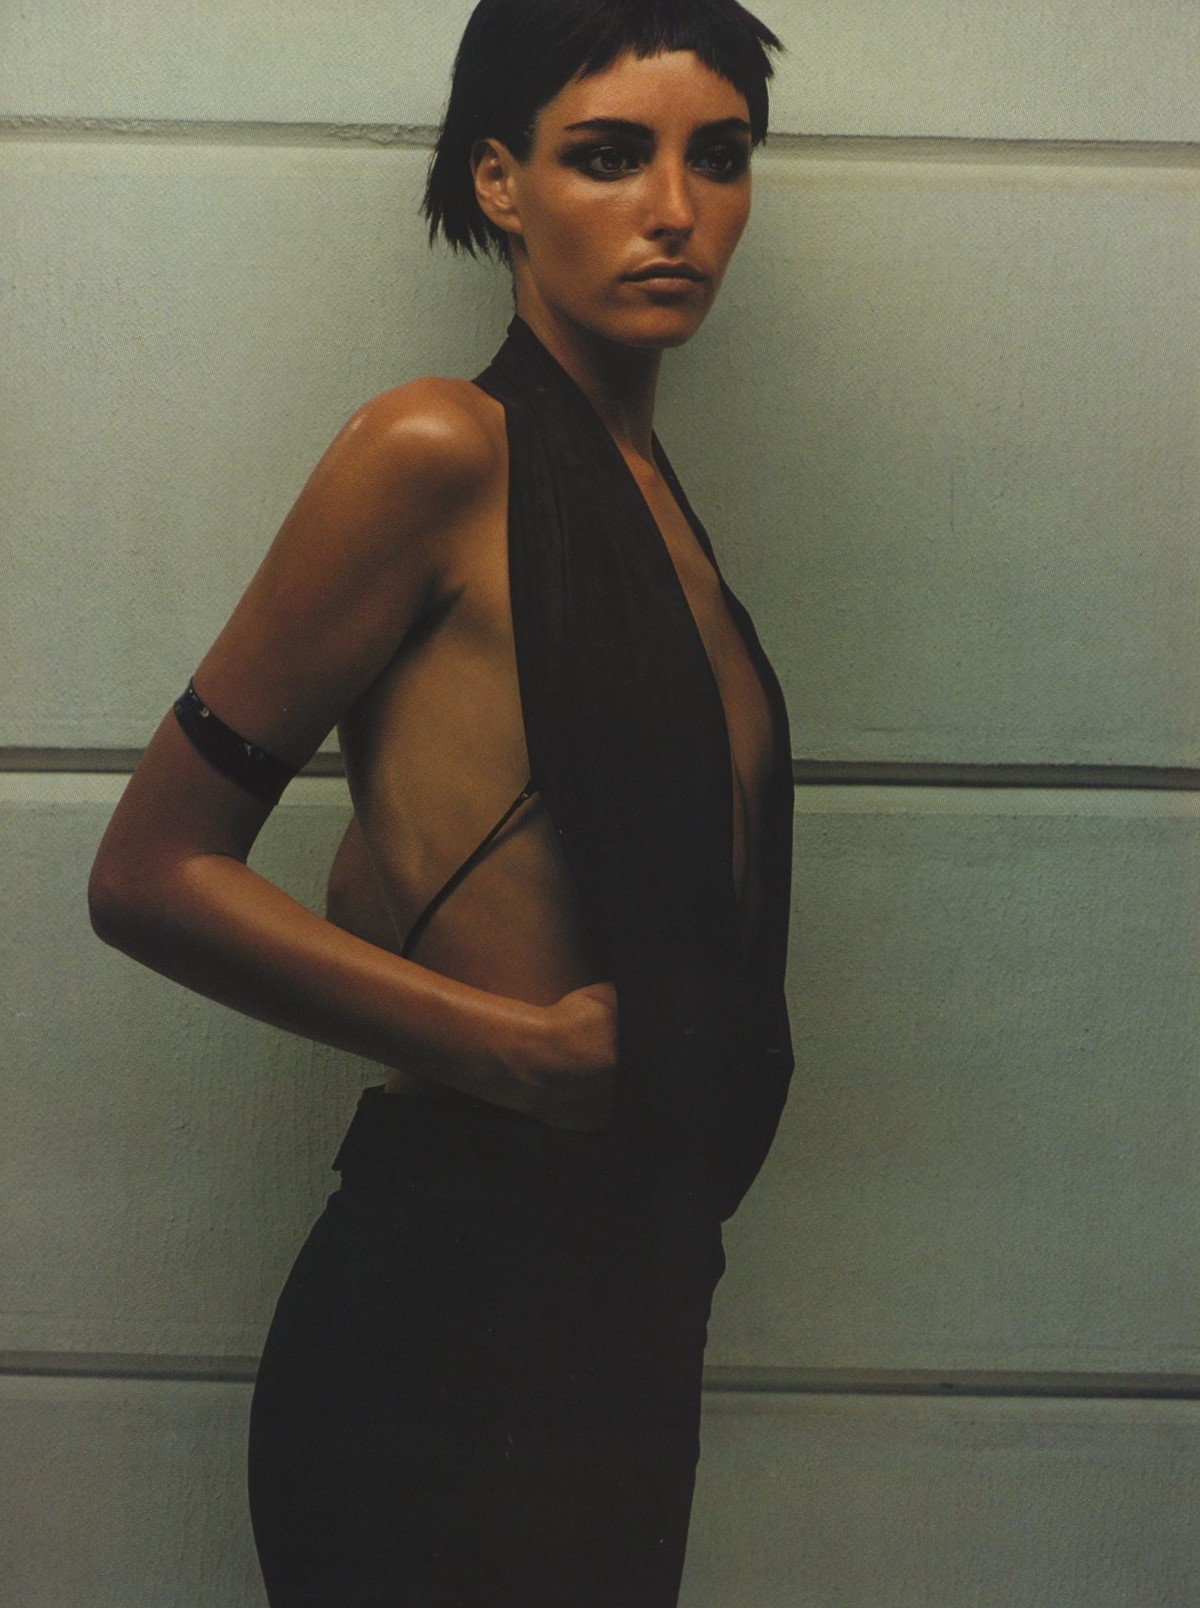 GUCCI | PHOTOGRAPHY WAYNE MASER | FASHION EDITOR  SARAJANE HOARE | HARPER'S BAZAAR | MAY 1997